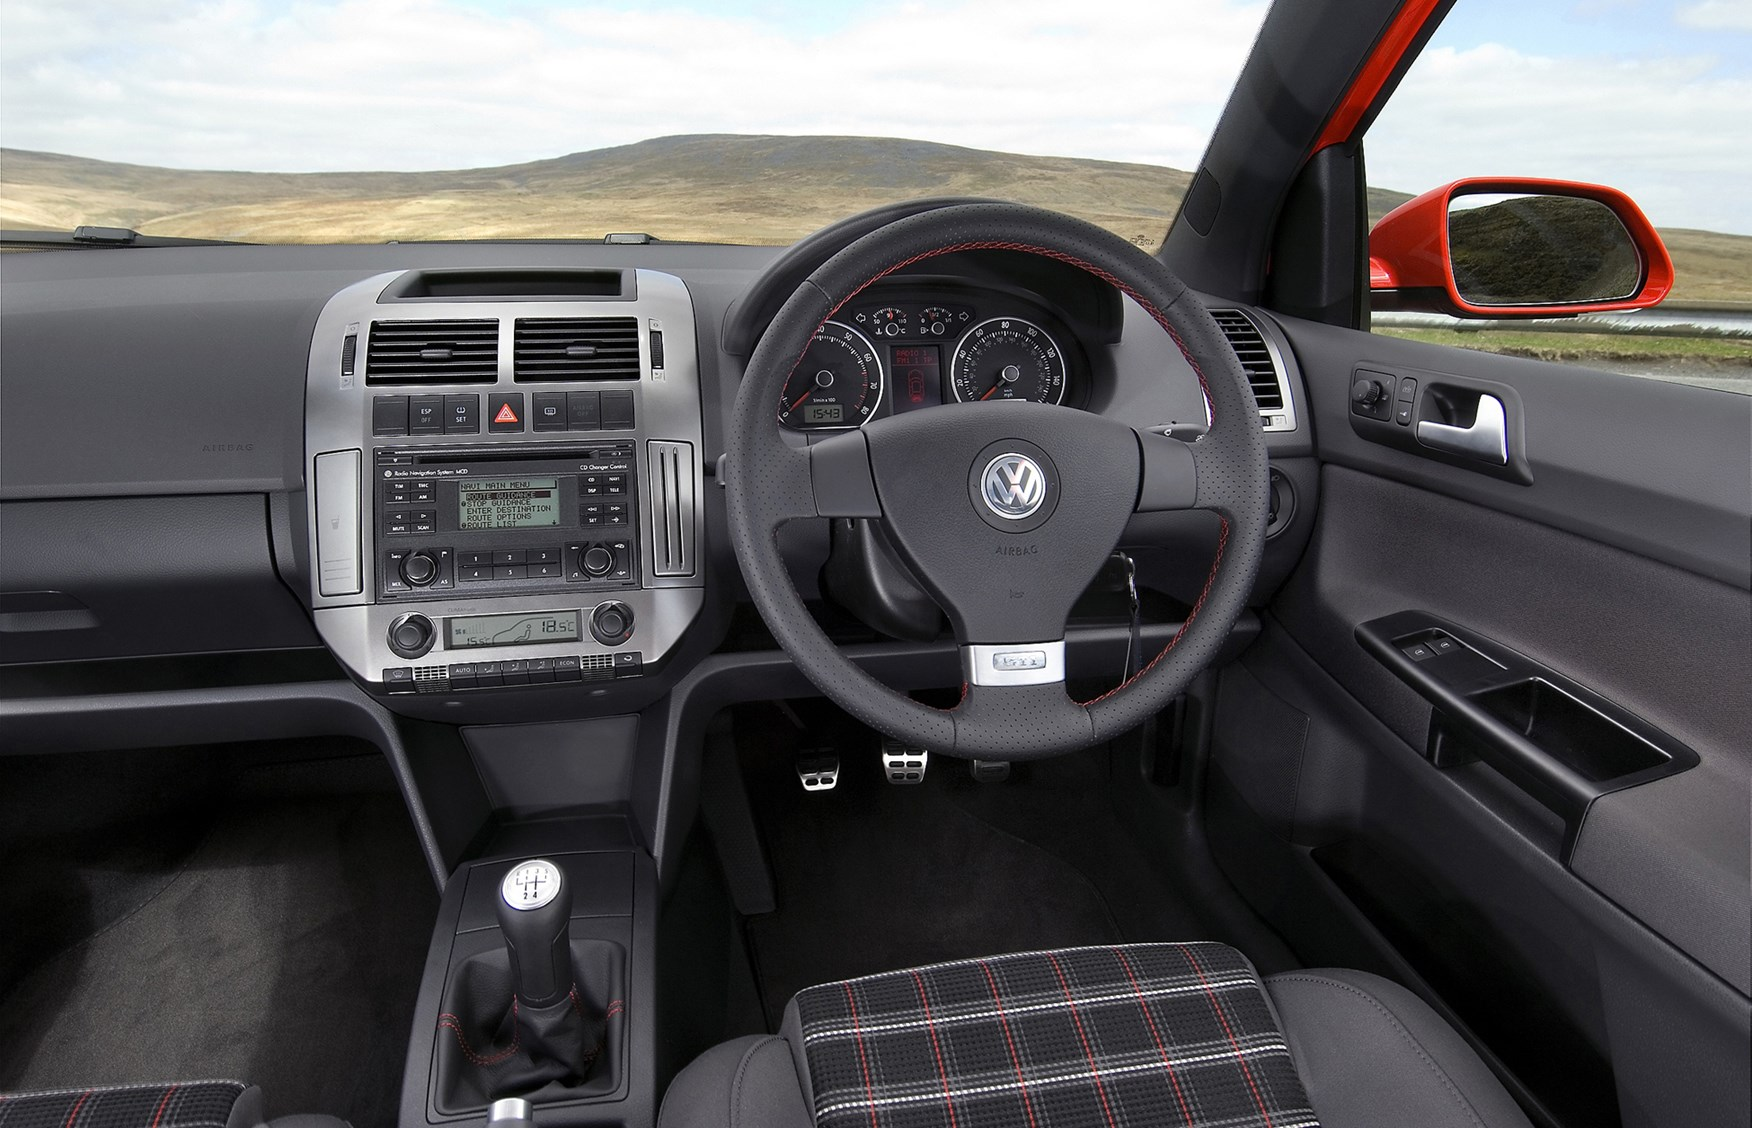 volkswagen polo gti review 2006 2009 parkers. Black Bedroom Furniture Sets. Home Design Ideas